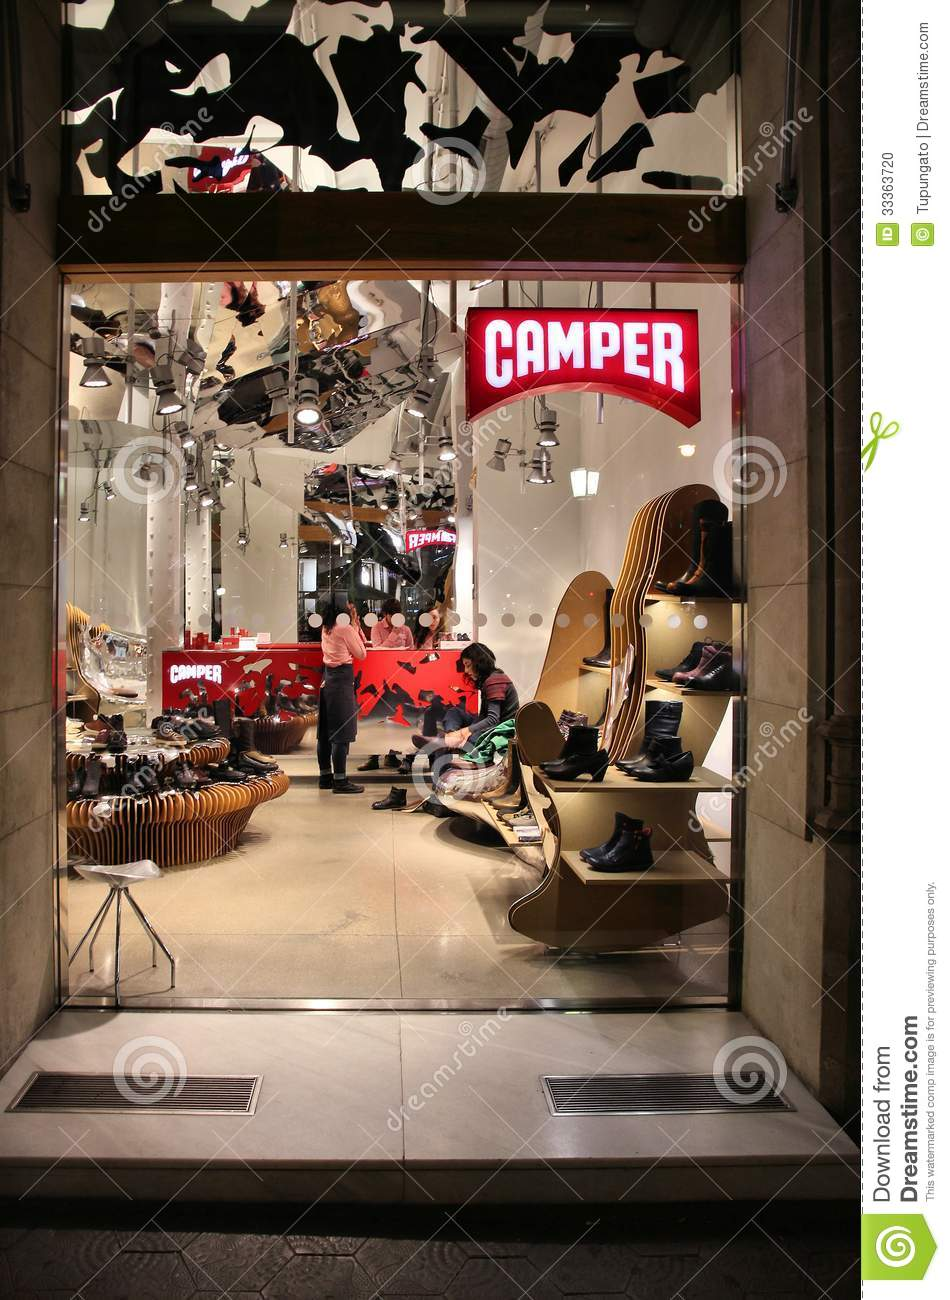 Spanish shoe company exists since 1975, has 52 own stores and